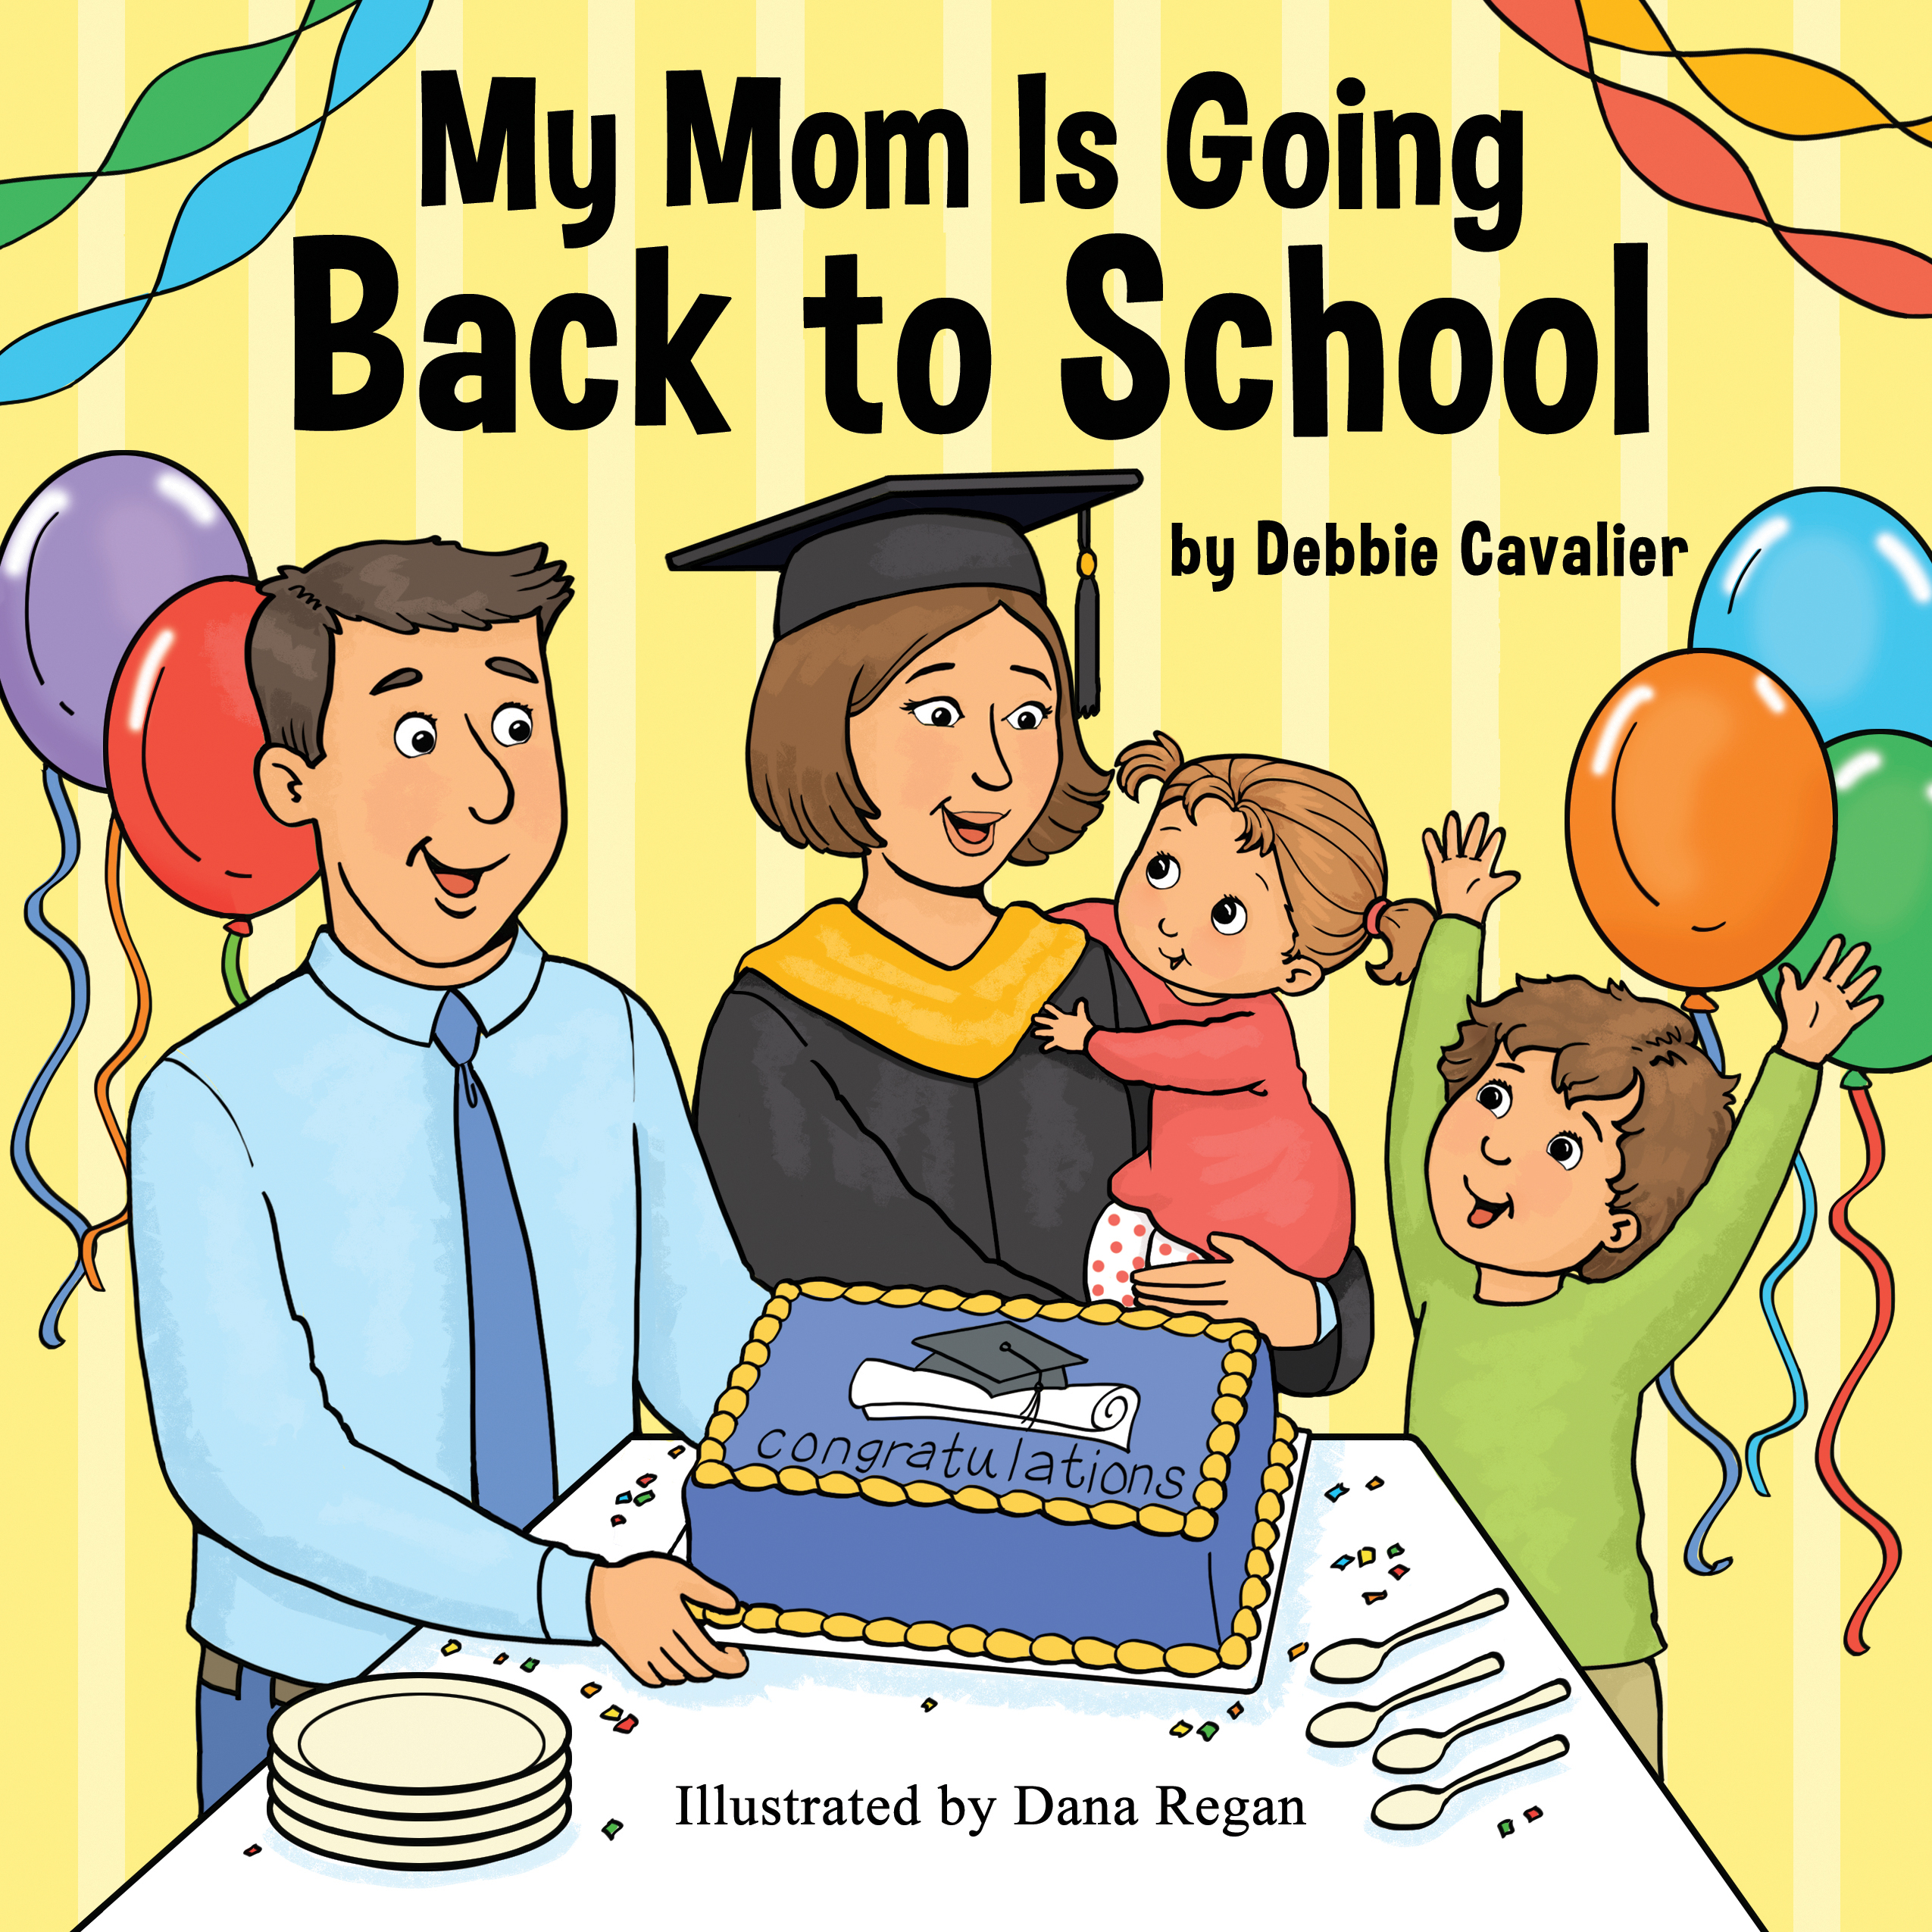 My Mom is Going Back to School